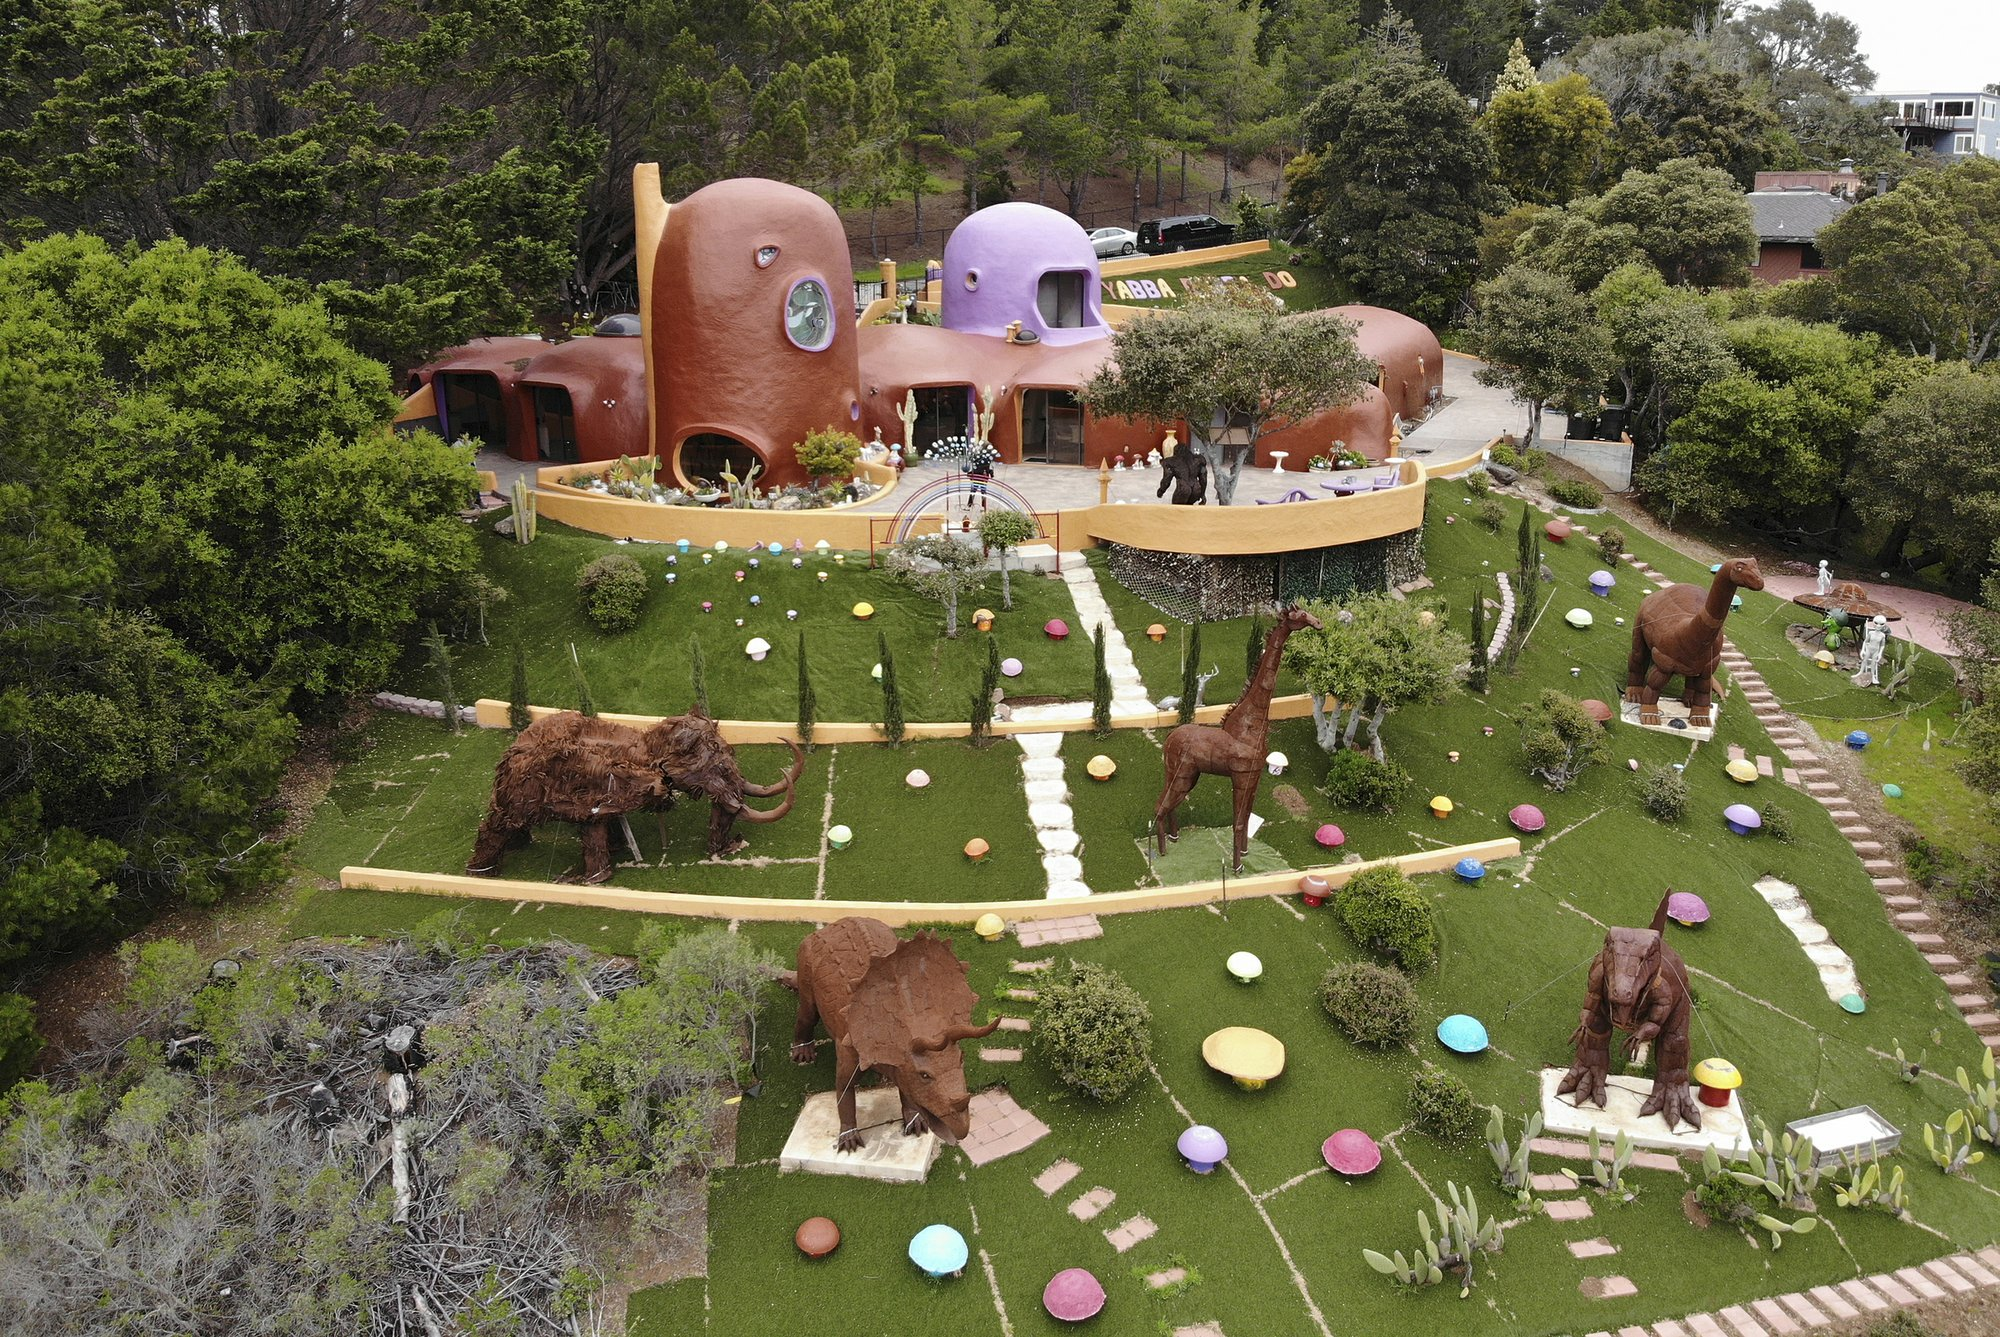 Flintstones House in California